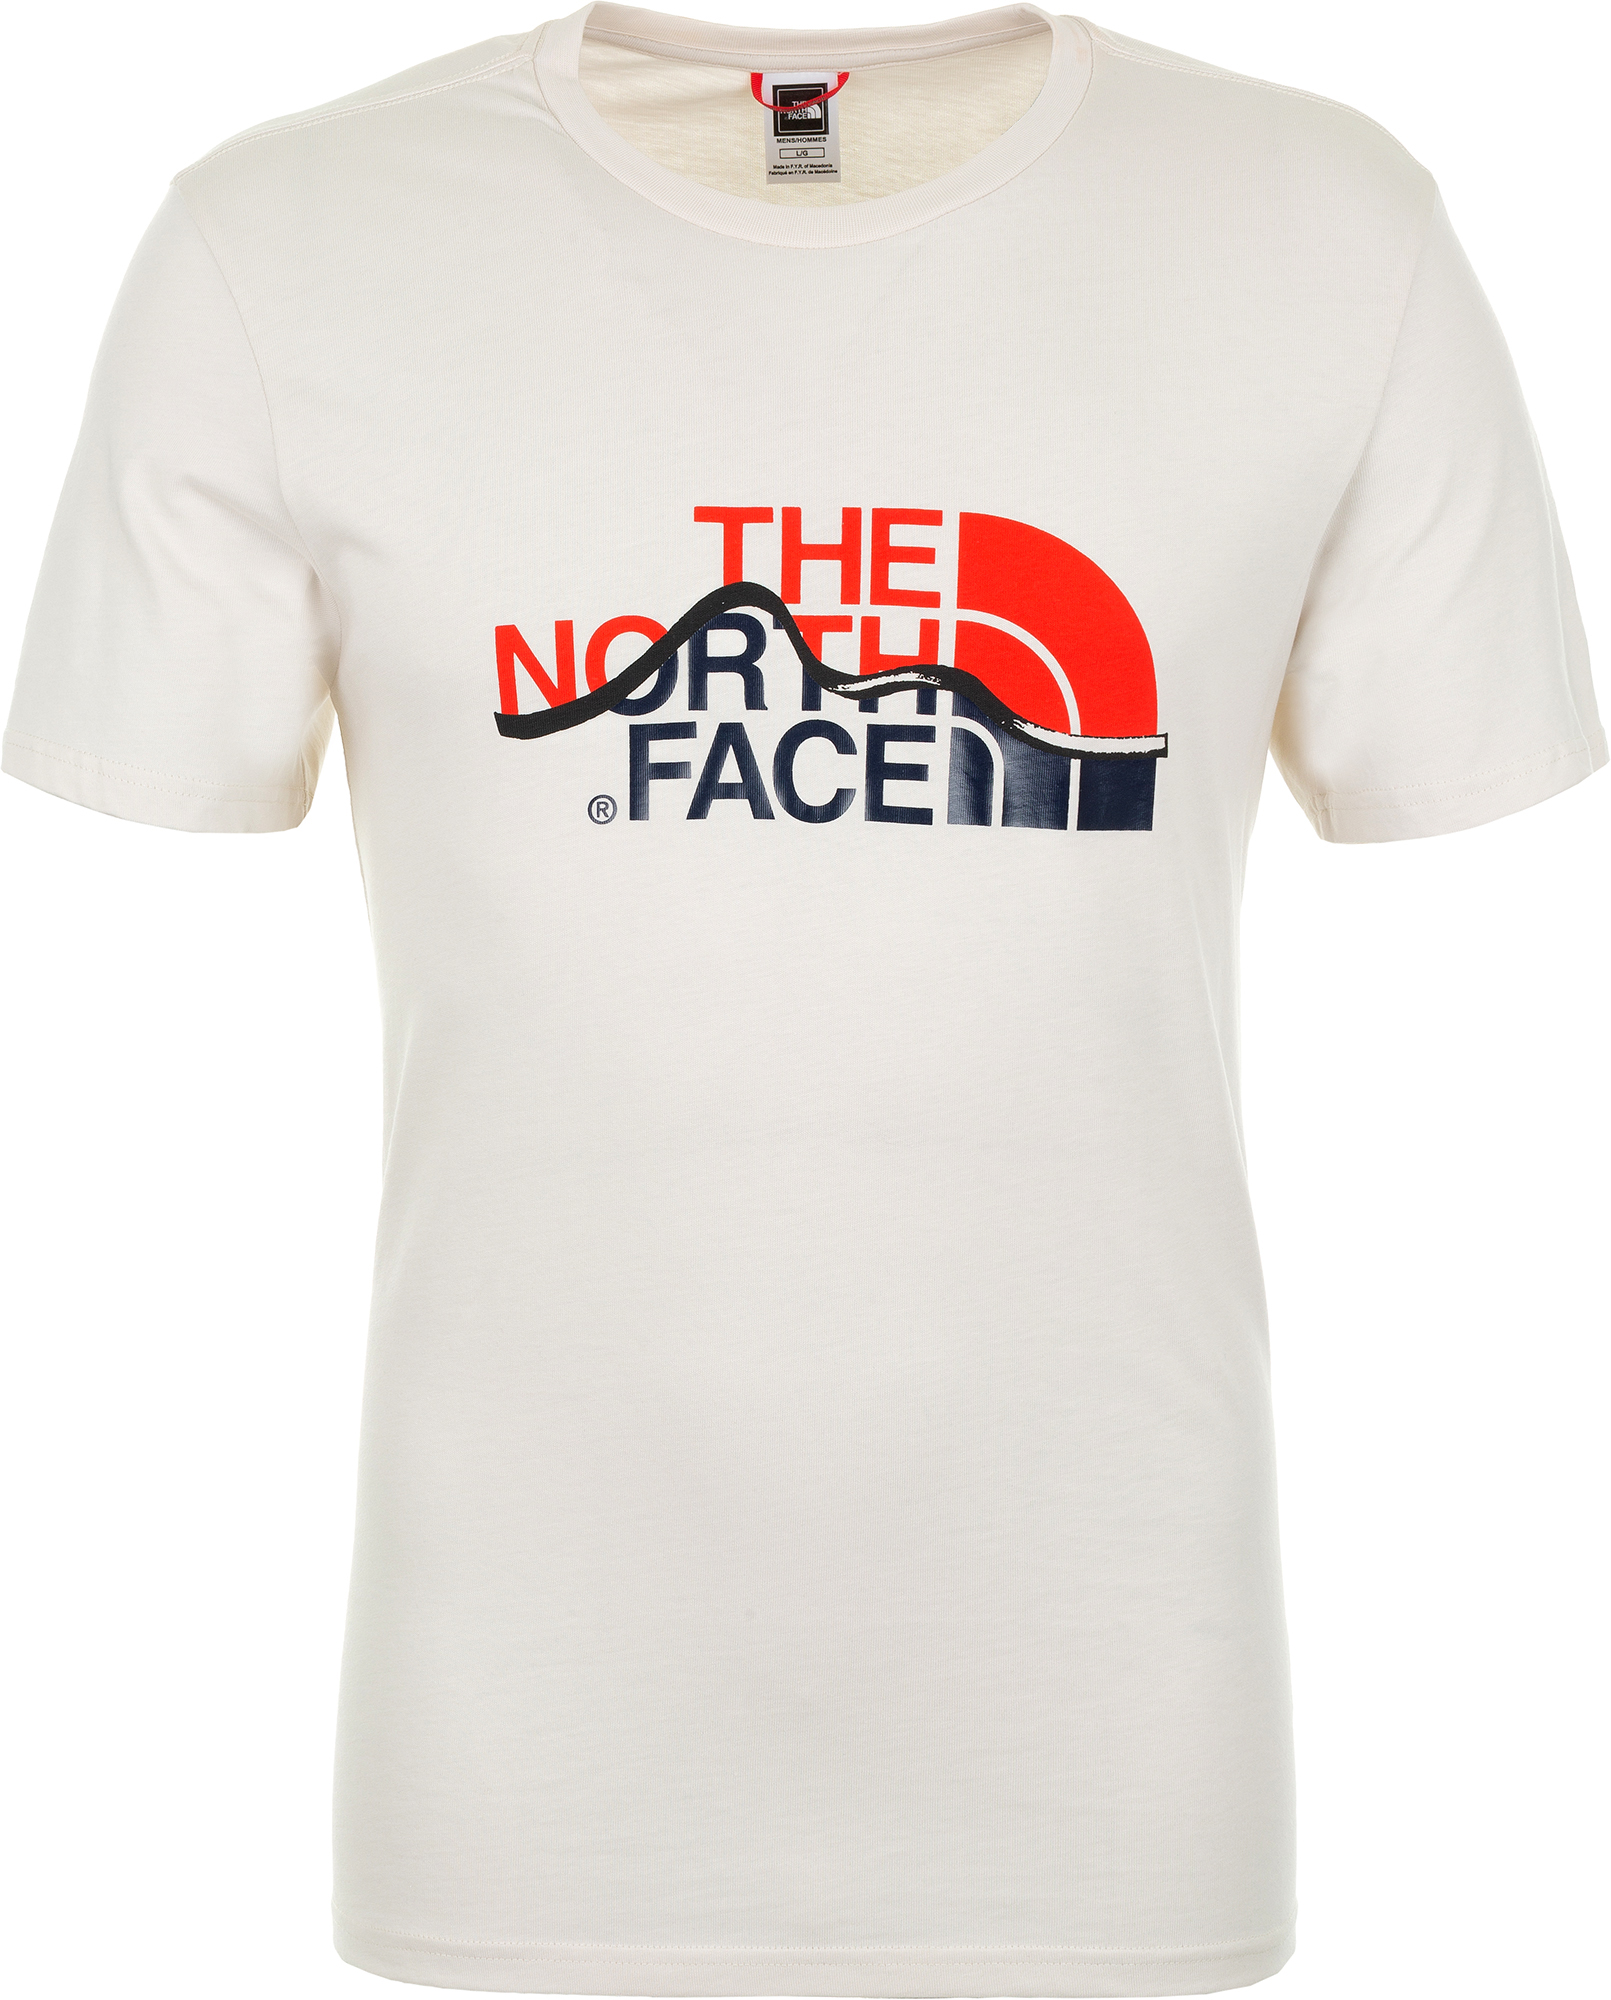 The North Face Футболка мужская The North Face Mountain Line, размер 52